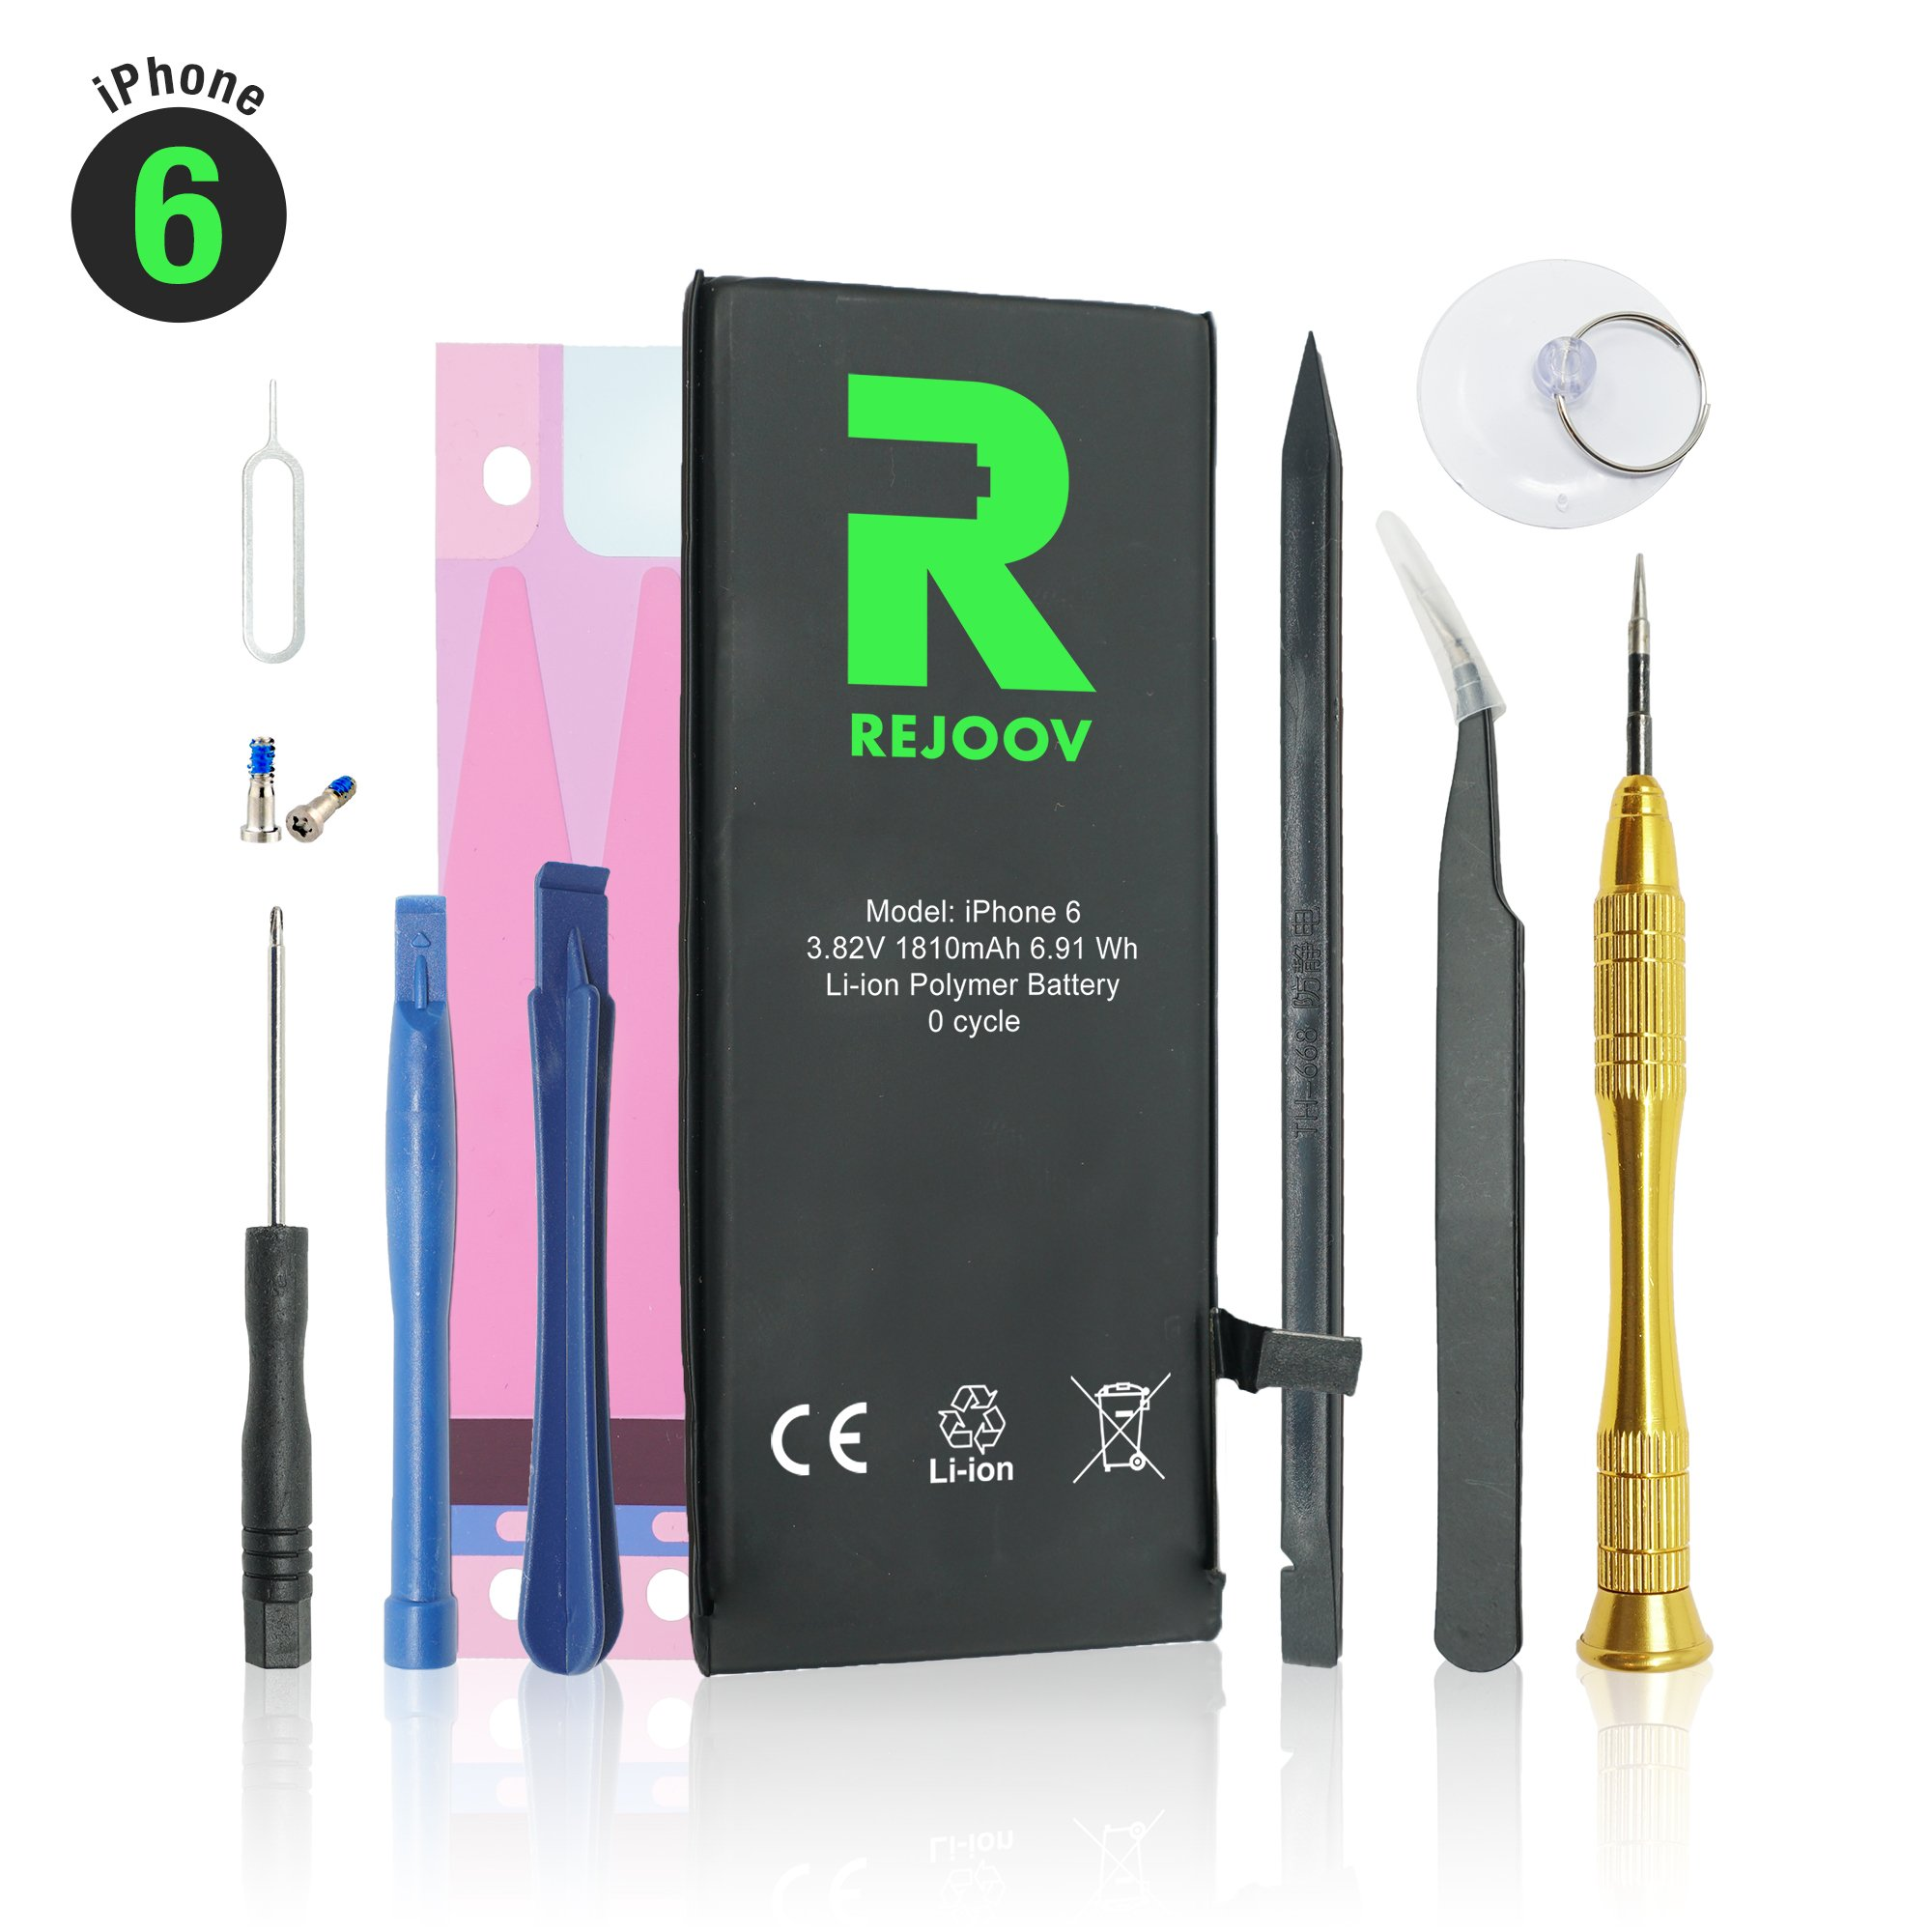 iPhone 6 Battery Replacement Kit with Complete Tools, Adhesive, and Instructions 1810mAh 0 Cycle - 1 Year Warranty